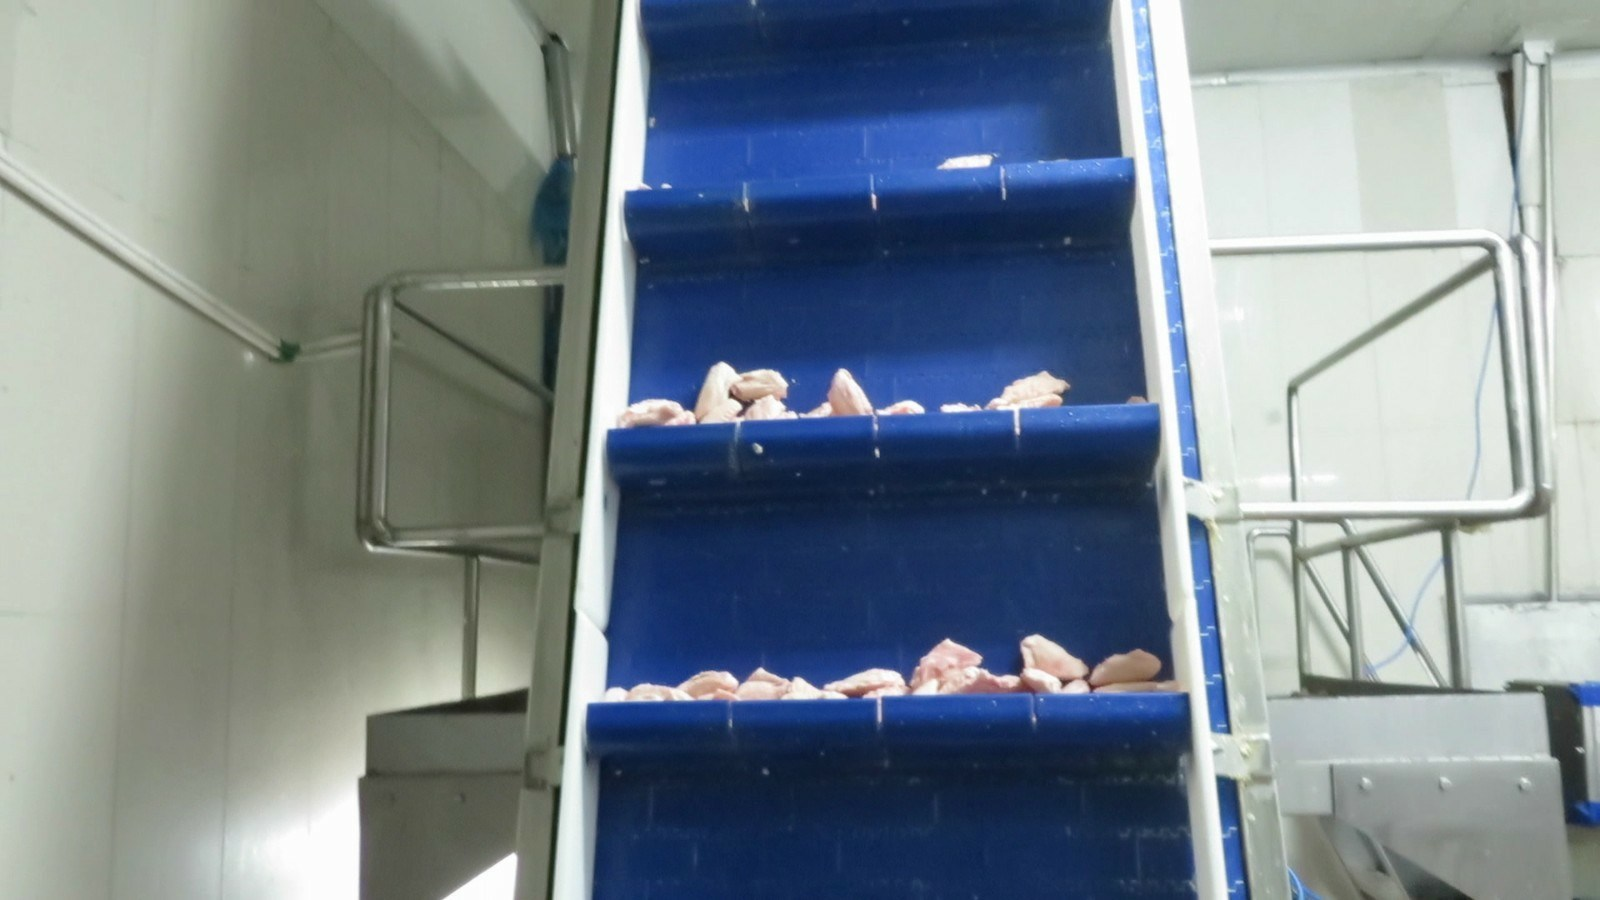 Fj-a-500g Food Poultry Sea-Fish Weight Sorter Checkweigher